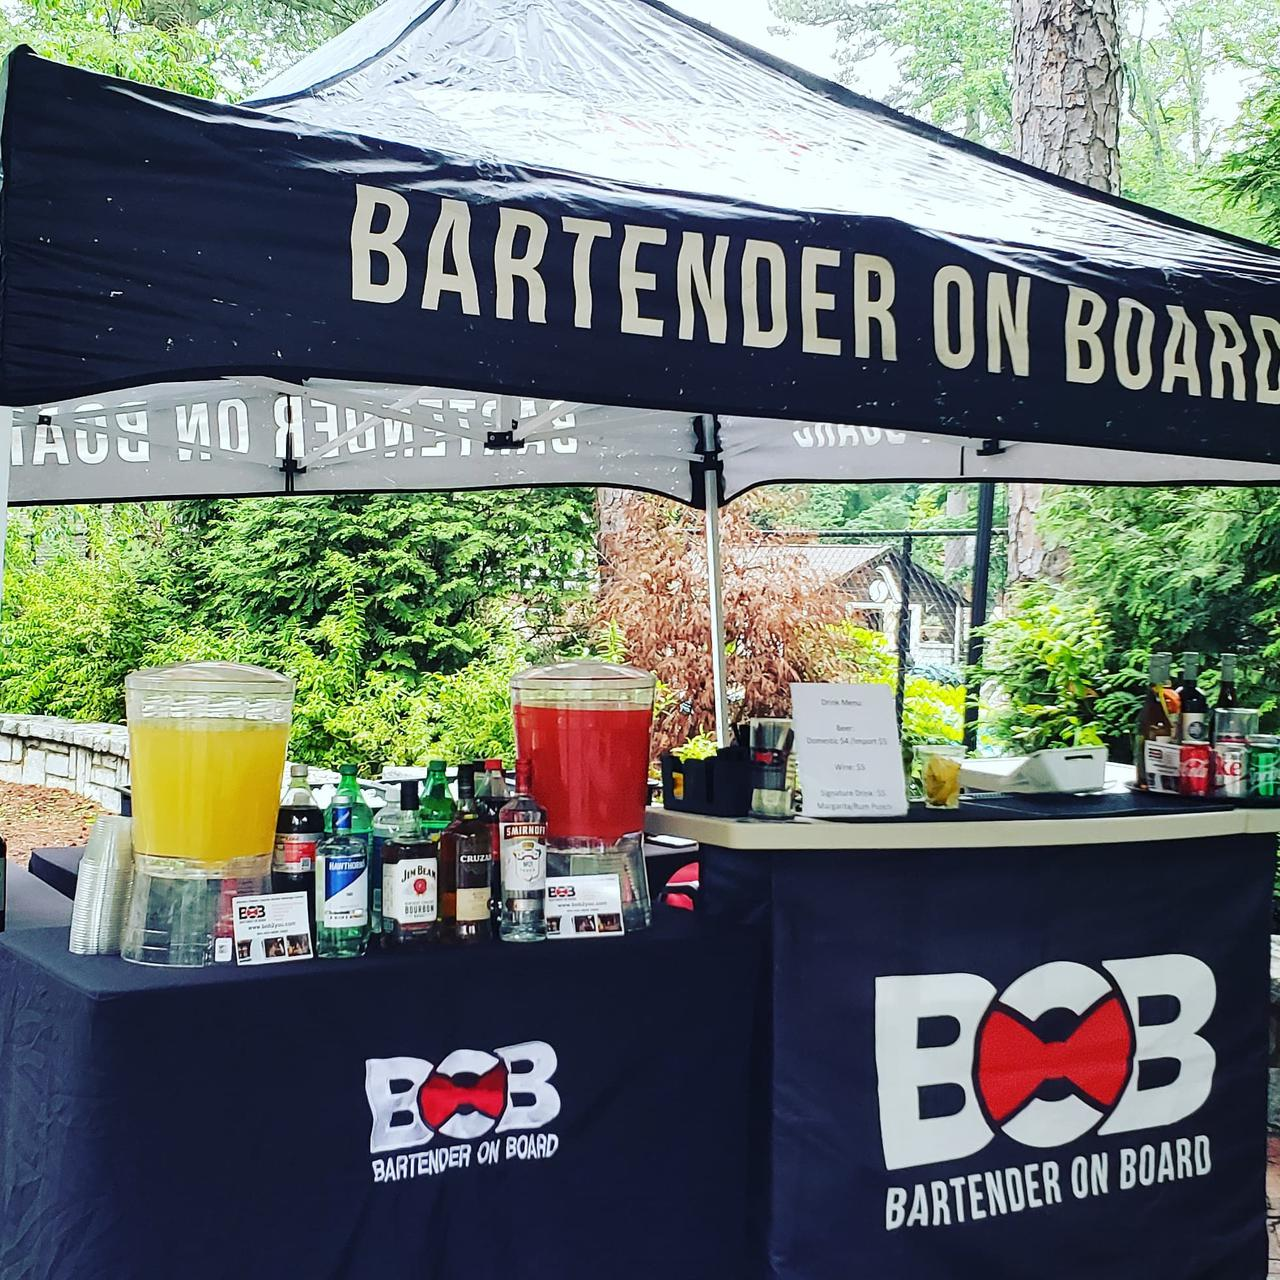 Award winning private party bartending service in Georgia.